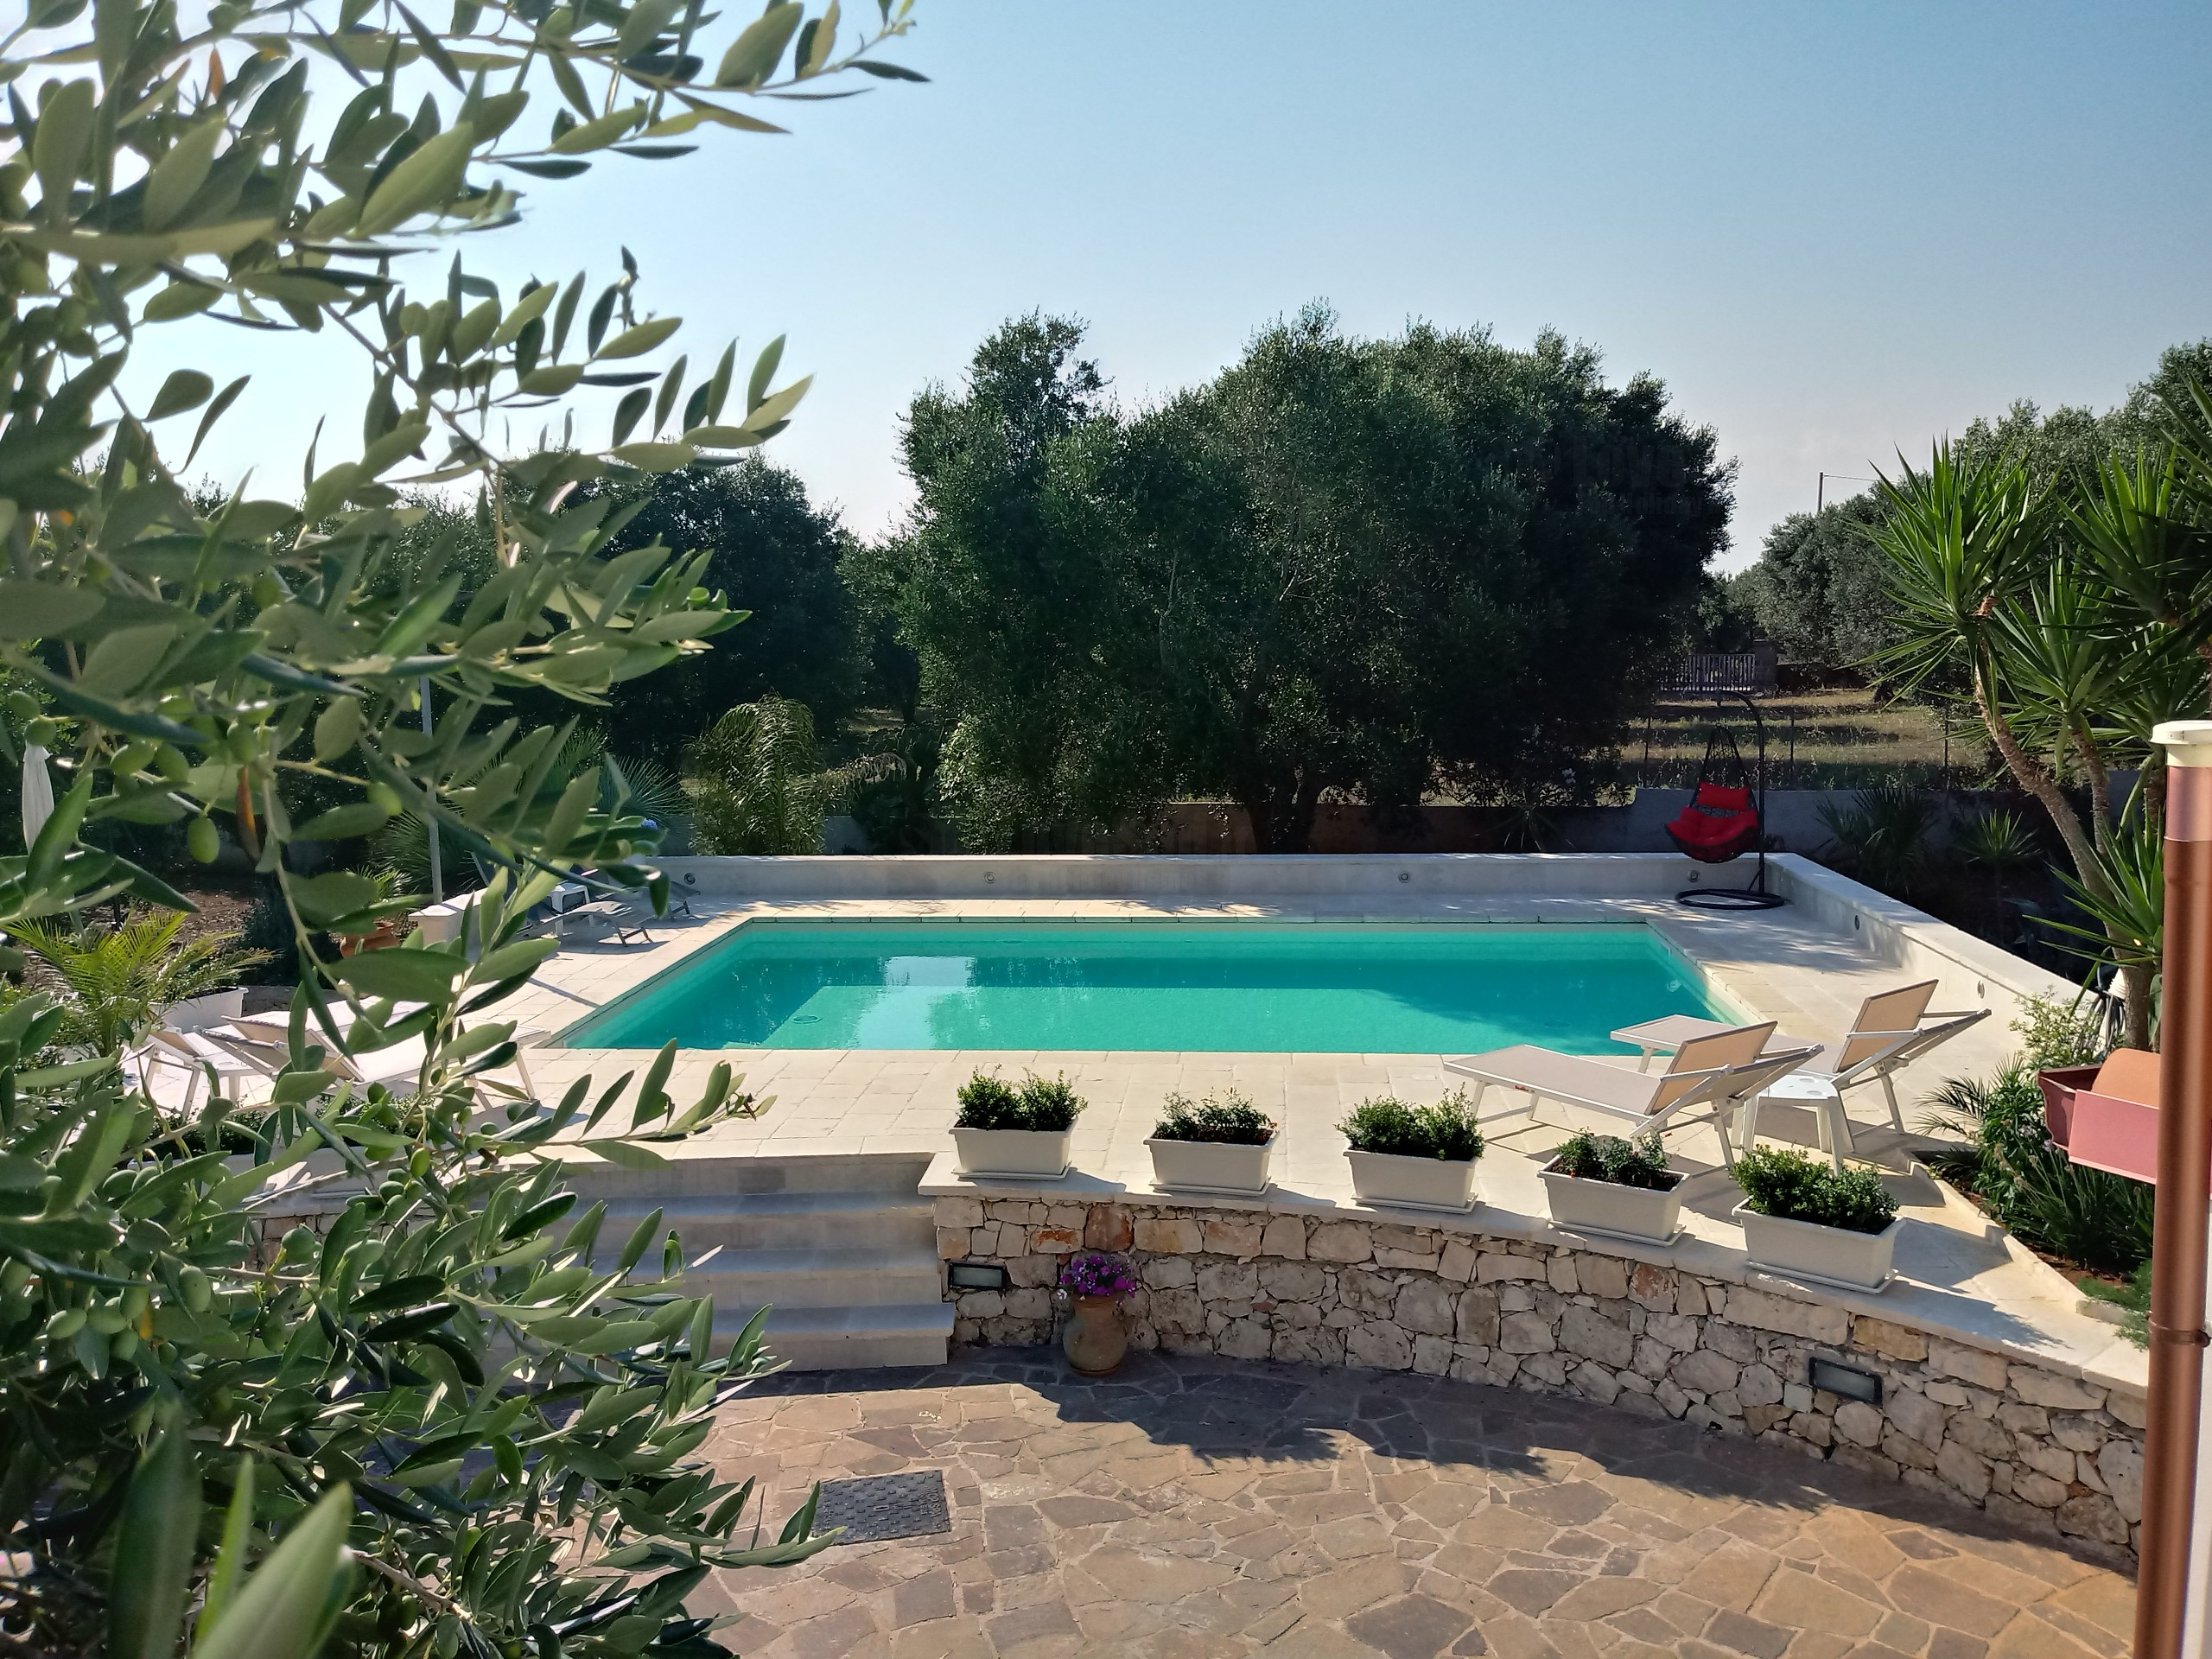 Cavaliere lovely pool home photo 22517542